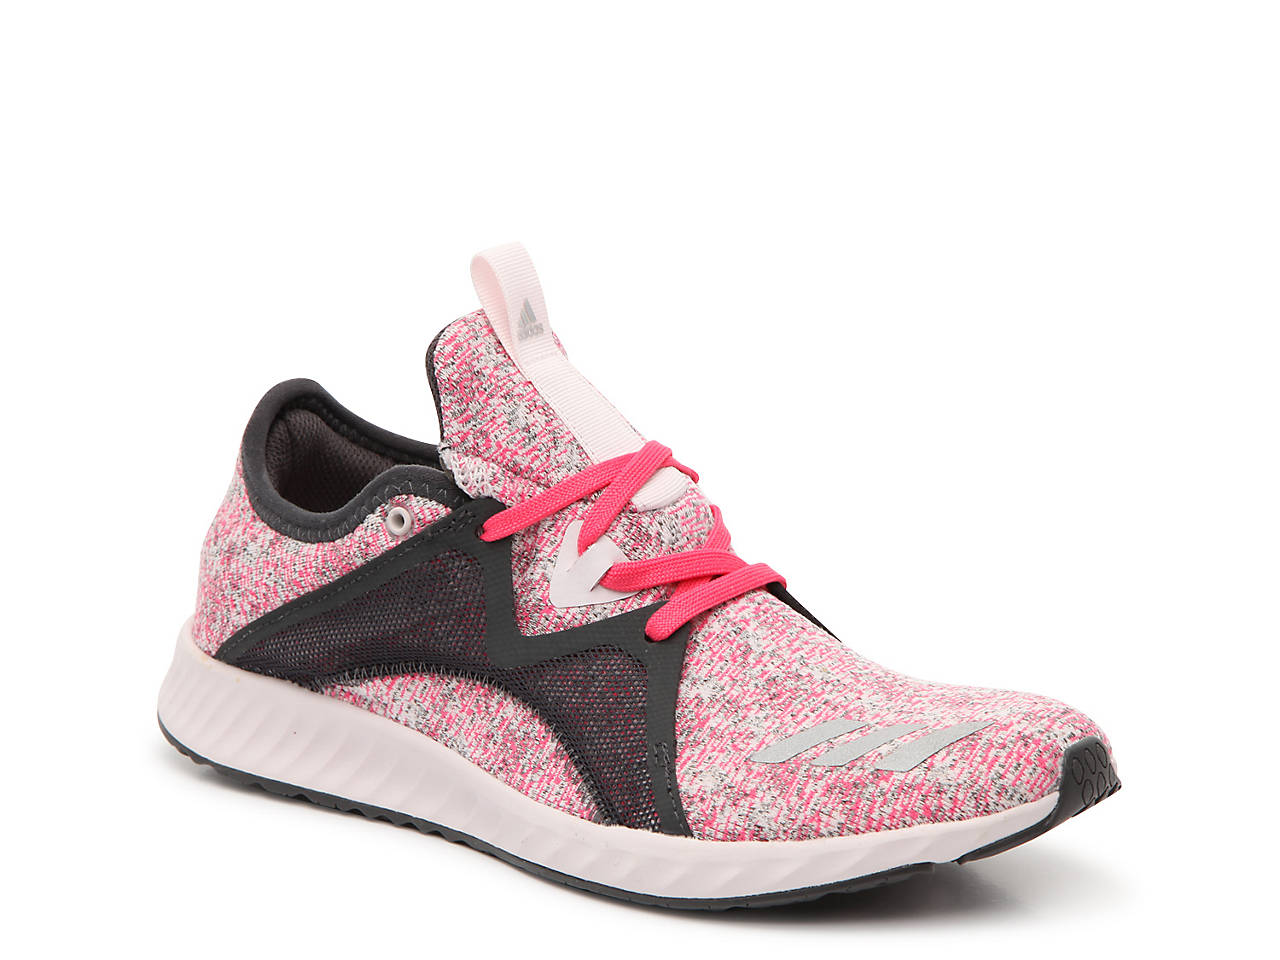 on sale f0c18 24eb6 adidas. Edge Lux 2 Lighweight Running ...